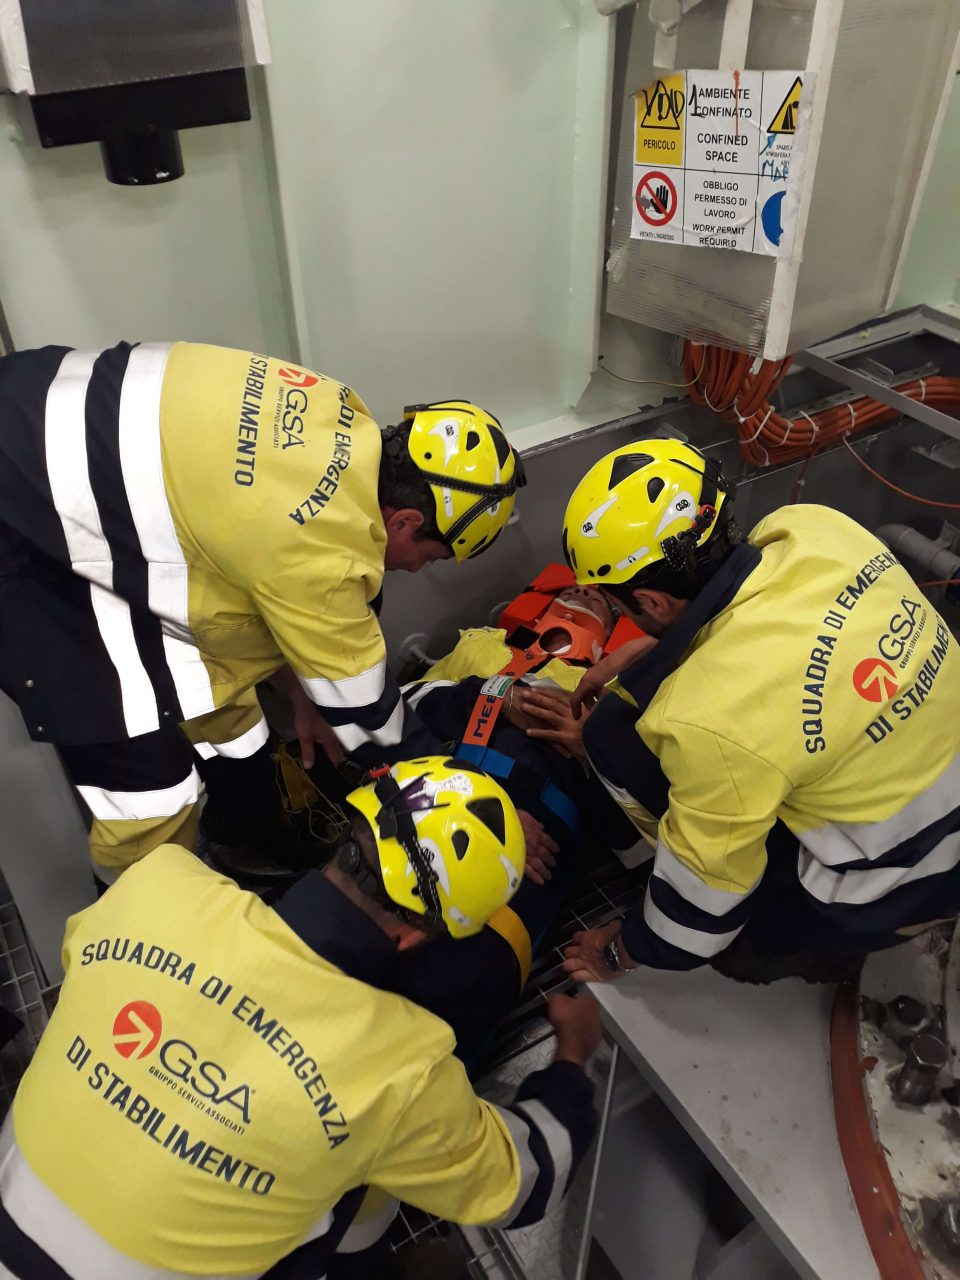 Use of class 3 PPE – Self-contained breathing apparatuses for rescue operations